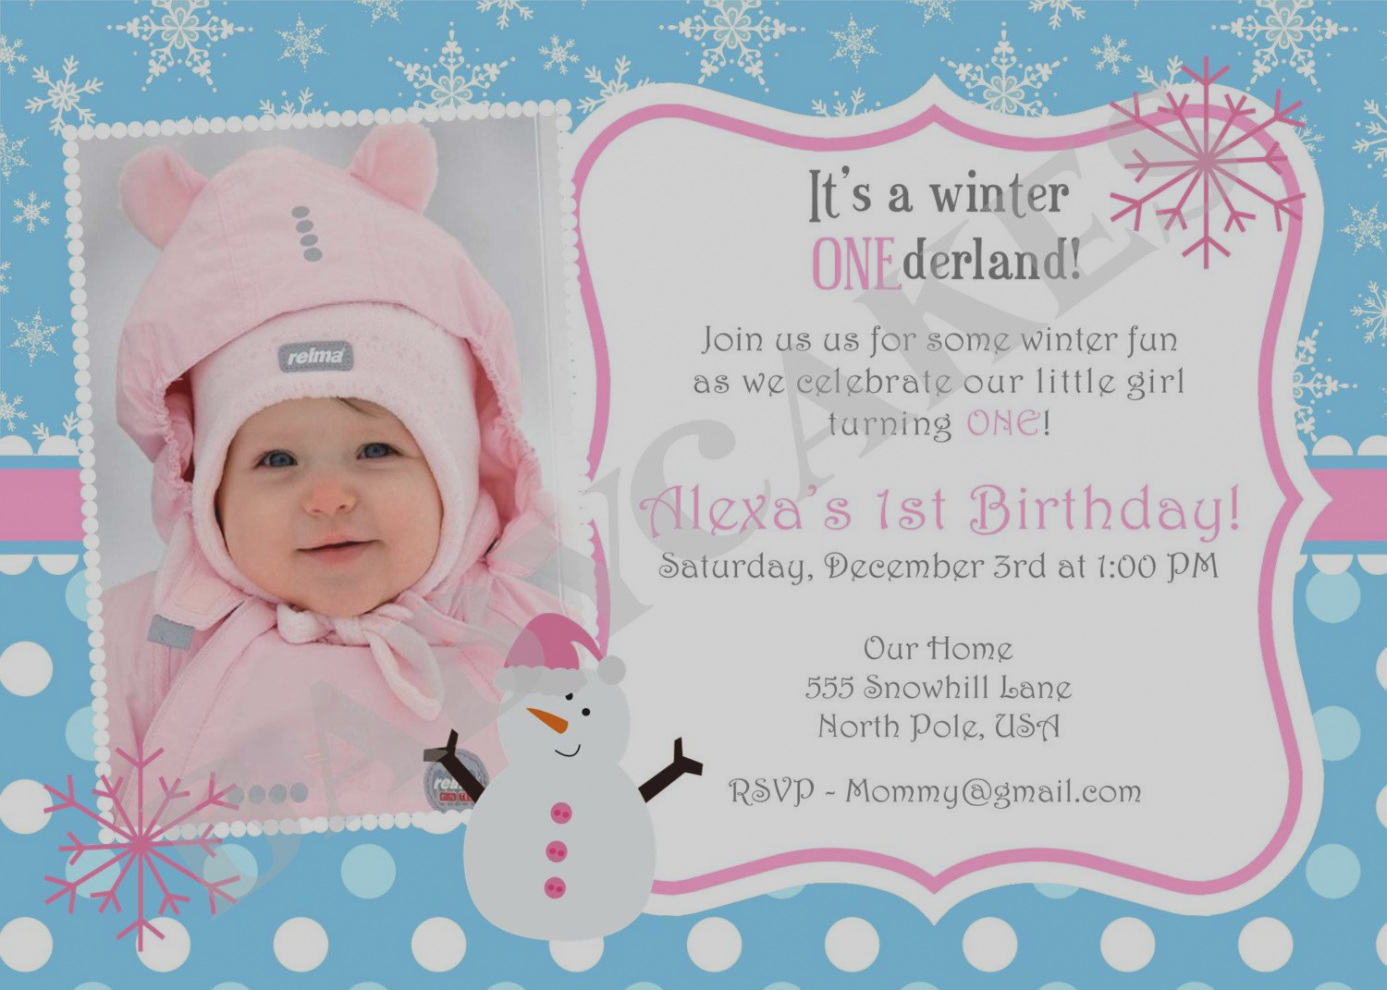 birthday invitation message for 6 year old ; inspirational-1st-birthday-party-invitation-wording-birthday-invitation-wording-for-6-year-old-birthday-invitations